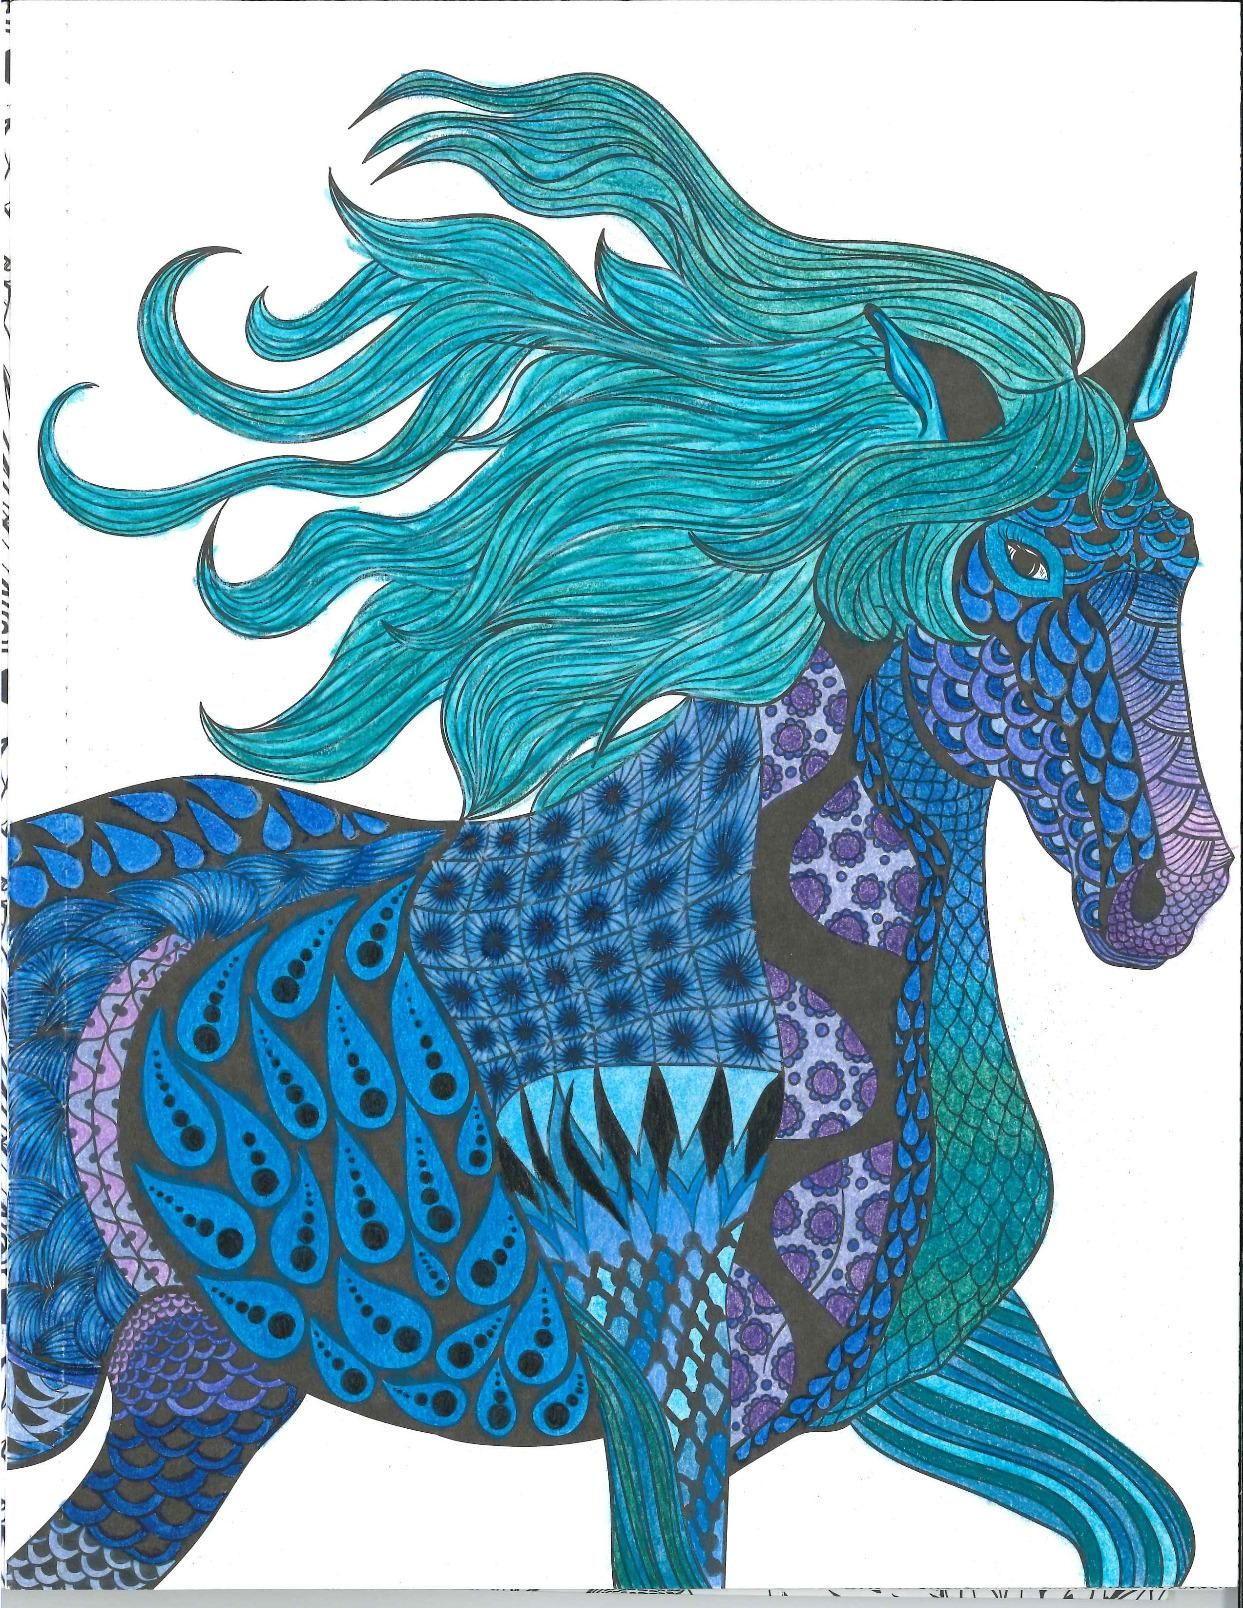 Color art living wonders - Amazon Com Living Wonders Color Art For Everyone Nice Inexpensive Coloring Book